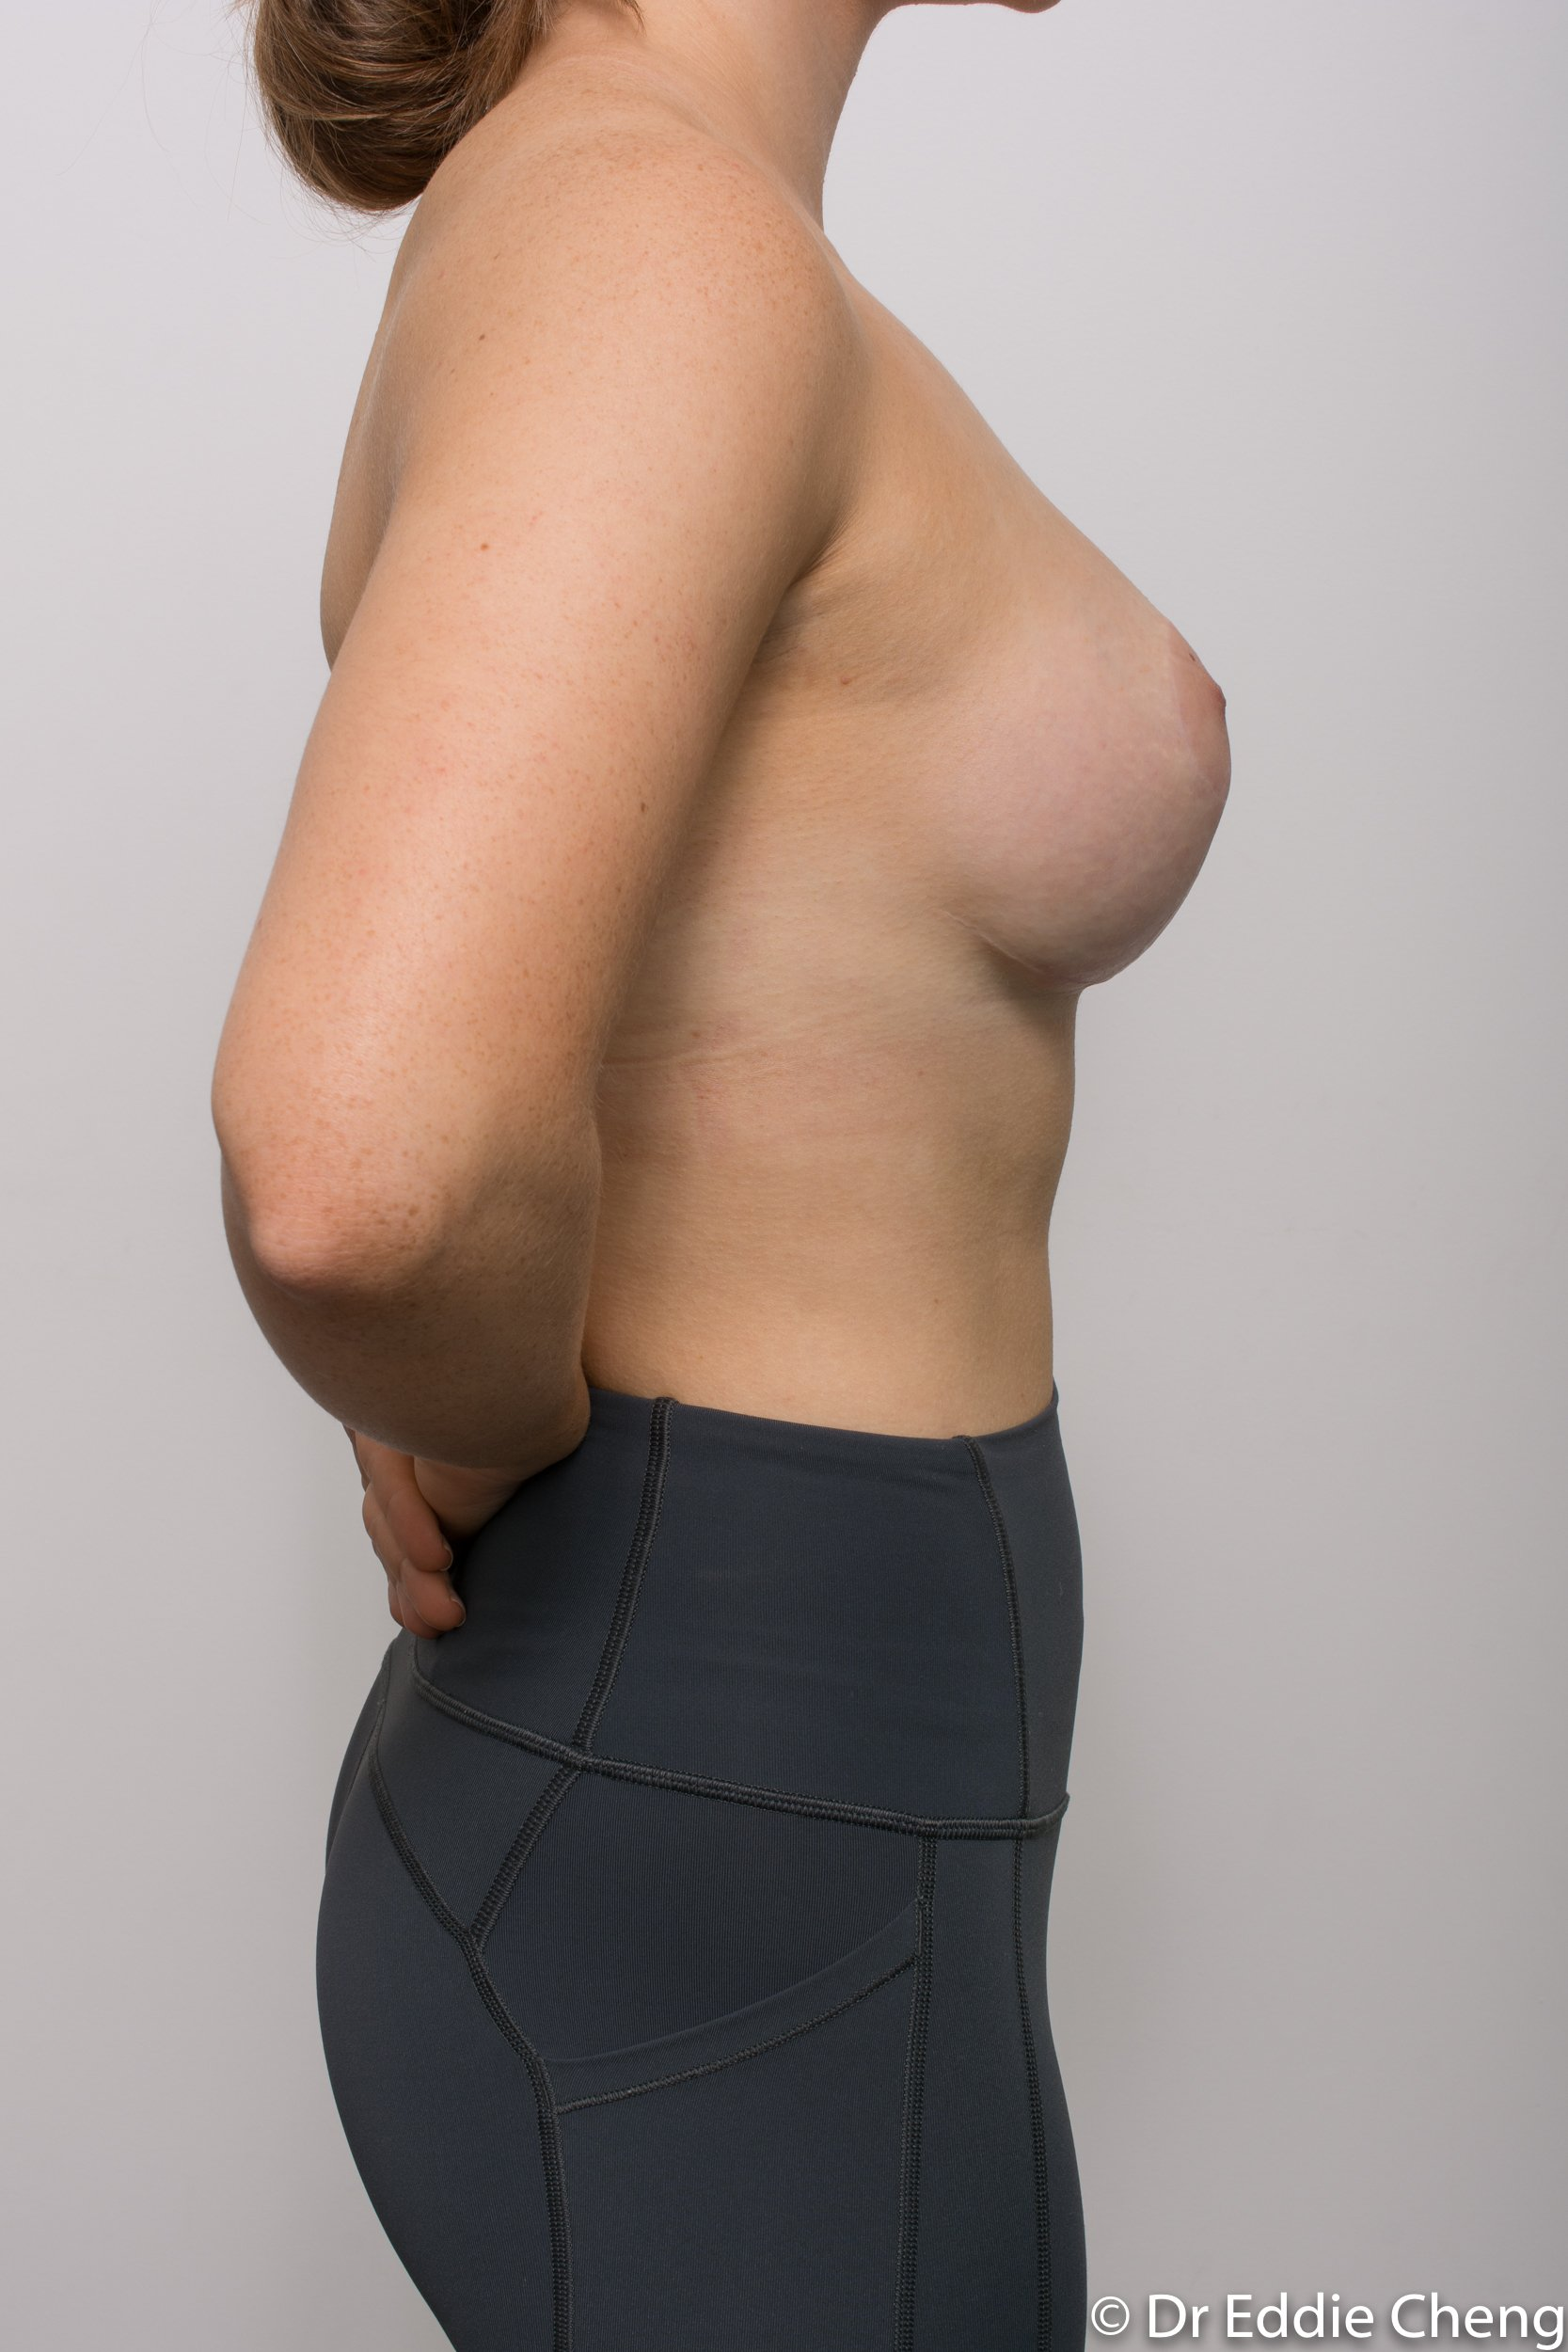 2 stage procedure tuberous breasts dr eddie cheng brisbane surgeon pre and post operative images -5-2